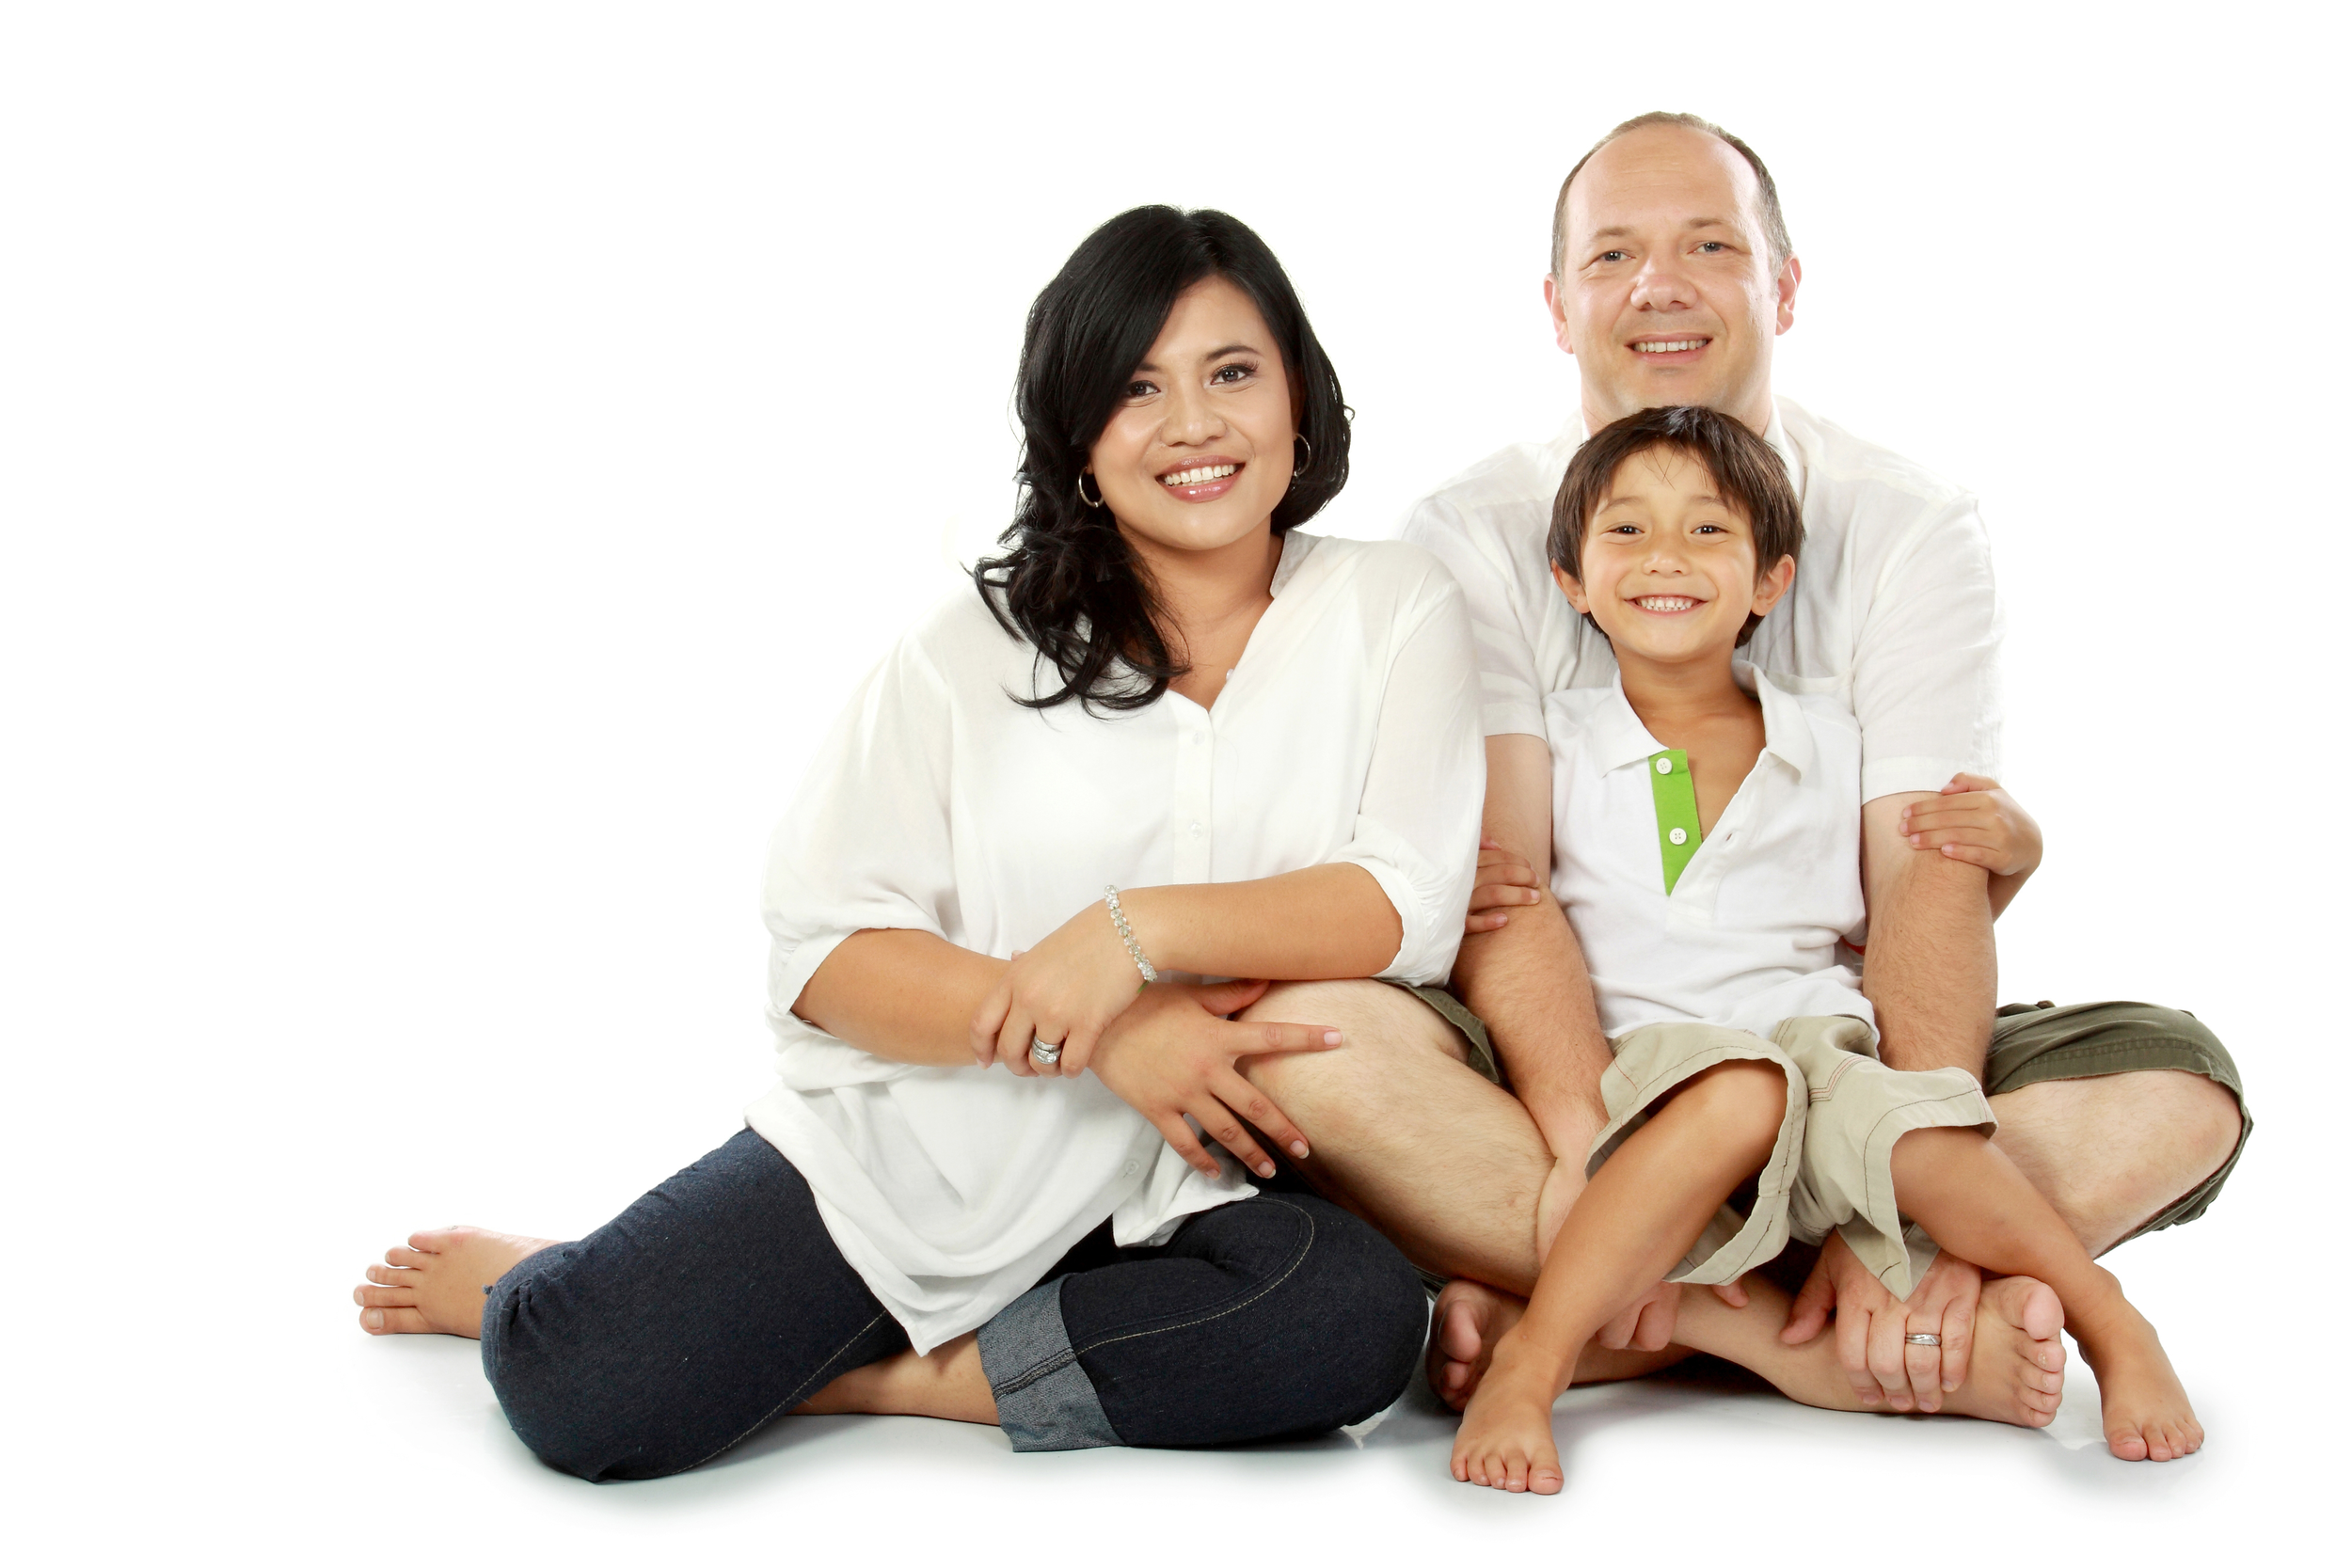 Family Sponsorship - Canadian and Permanent Residents may sponsor an eligible family member...